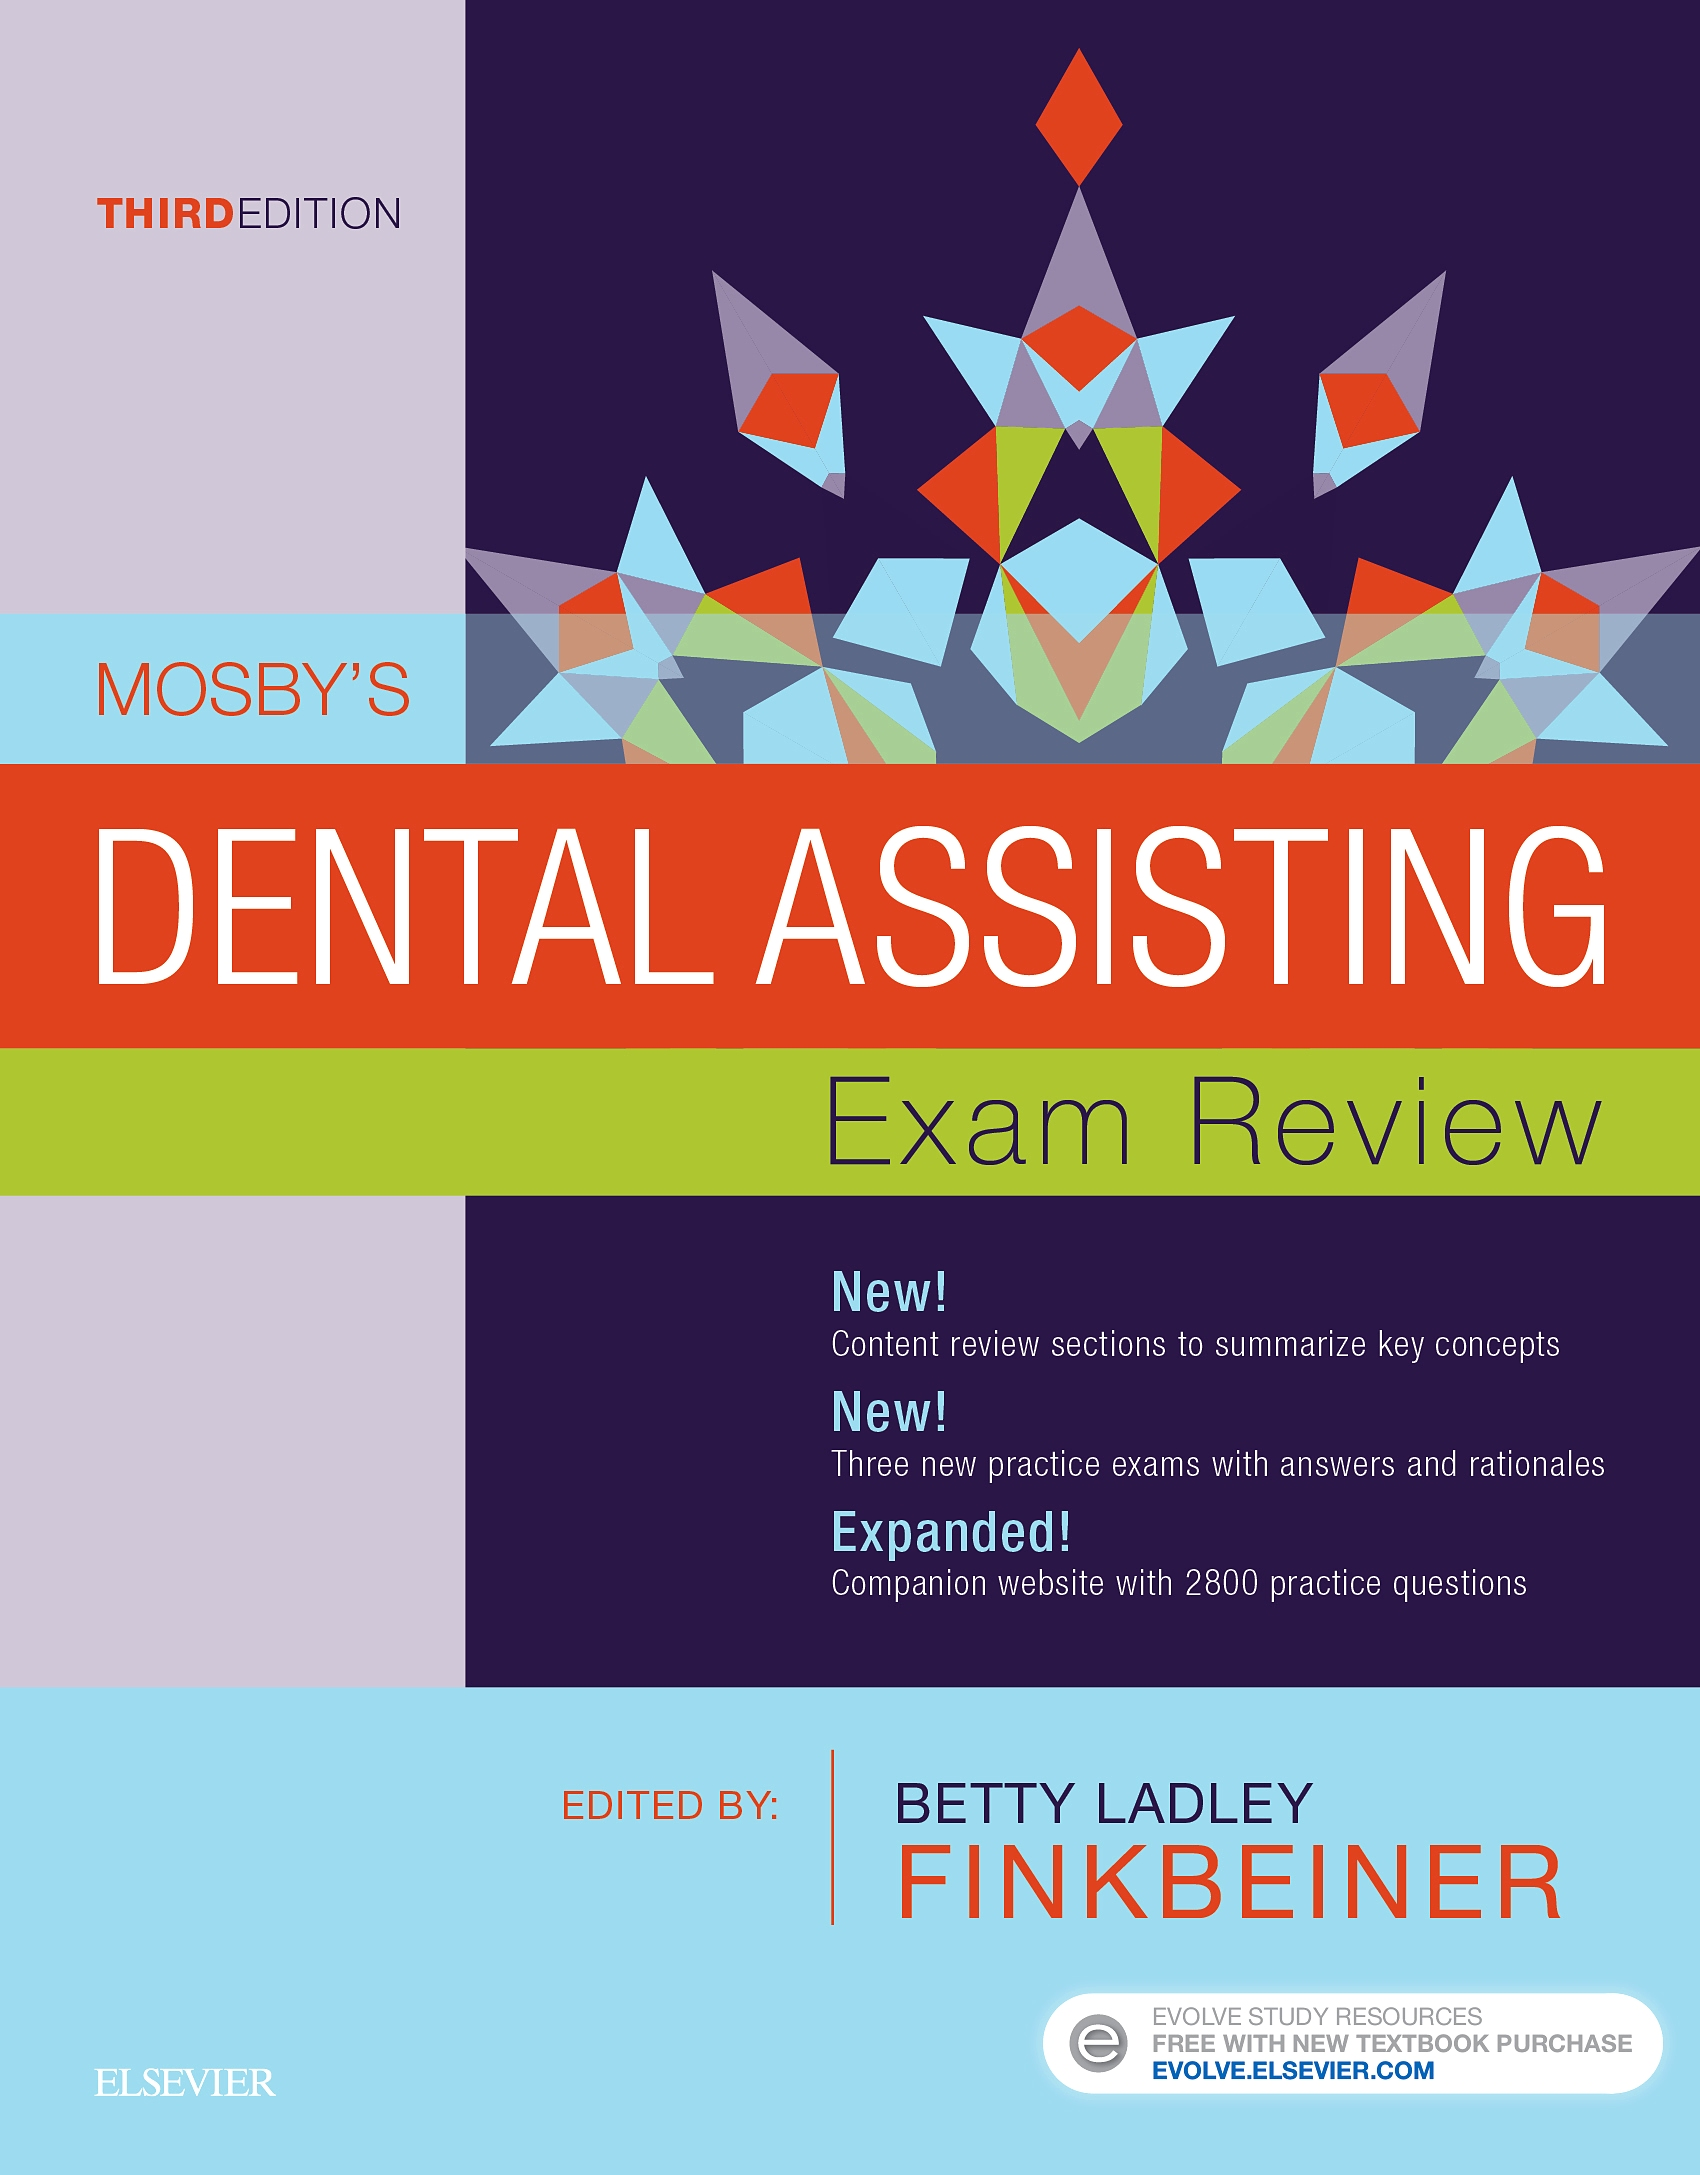 Evolve Resources for Mosby's Dental Assisting Exam Review, 3rd Edition